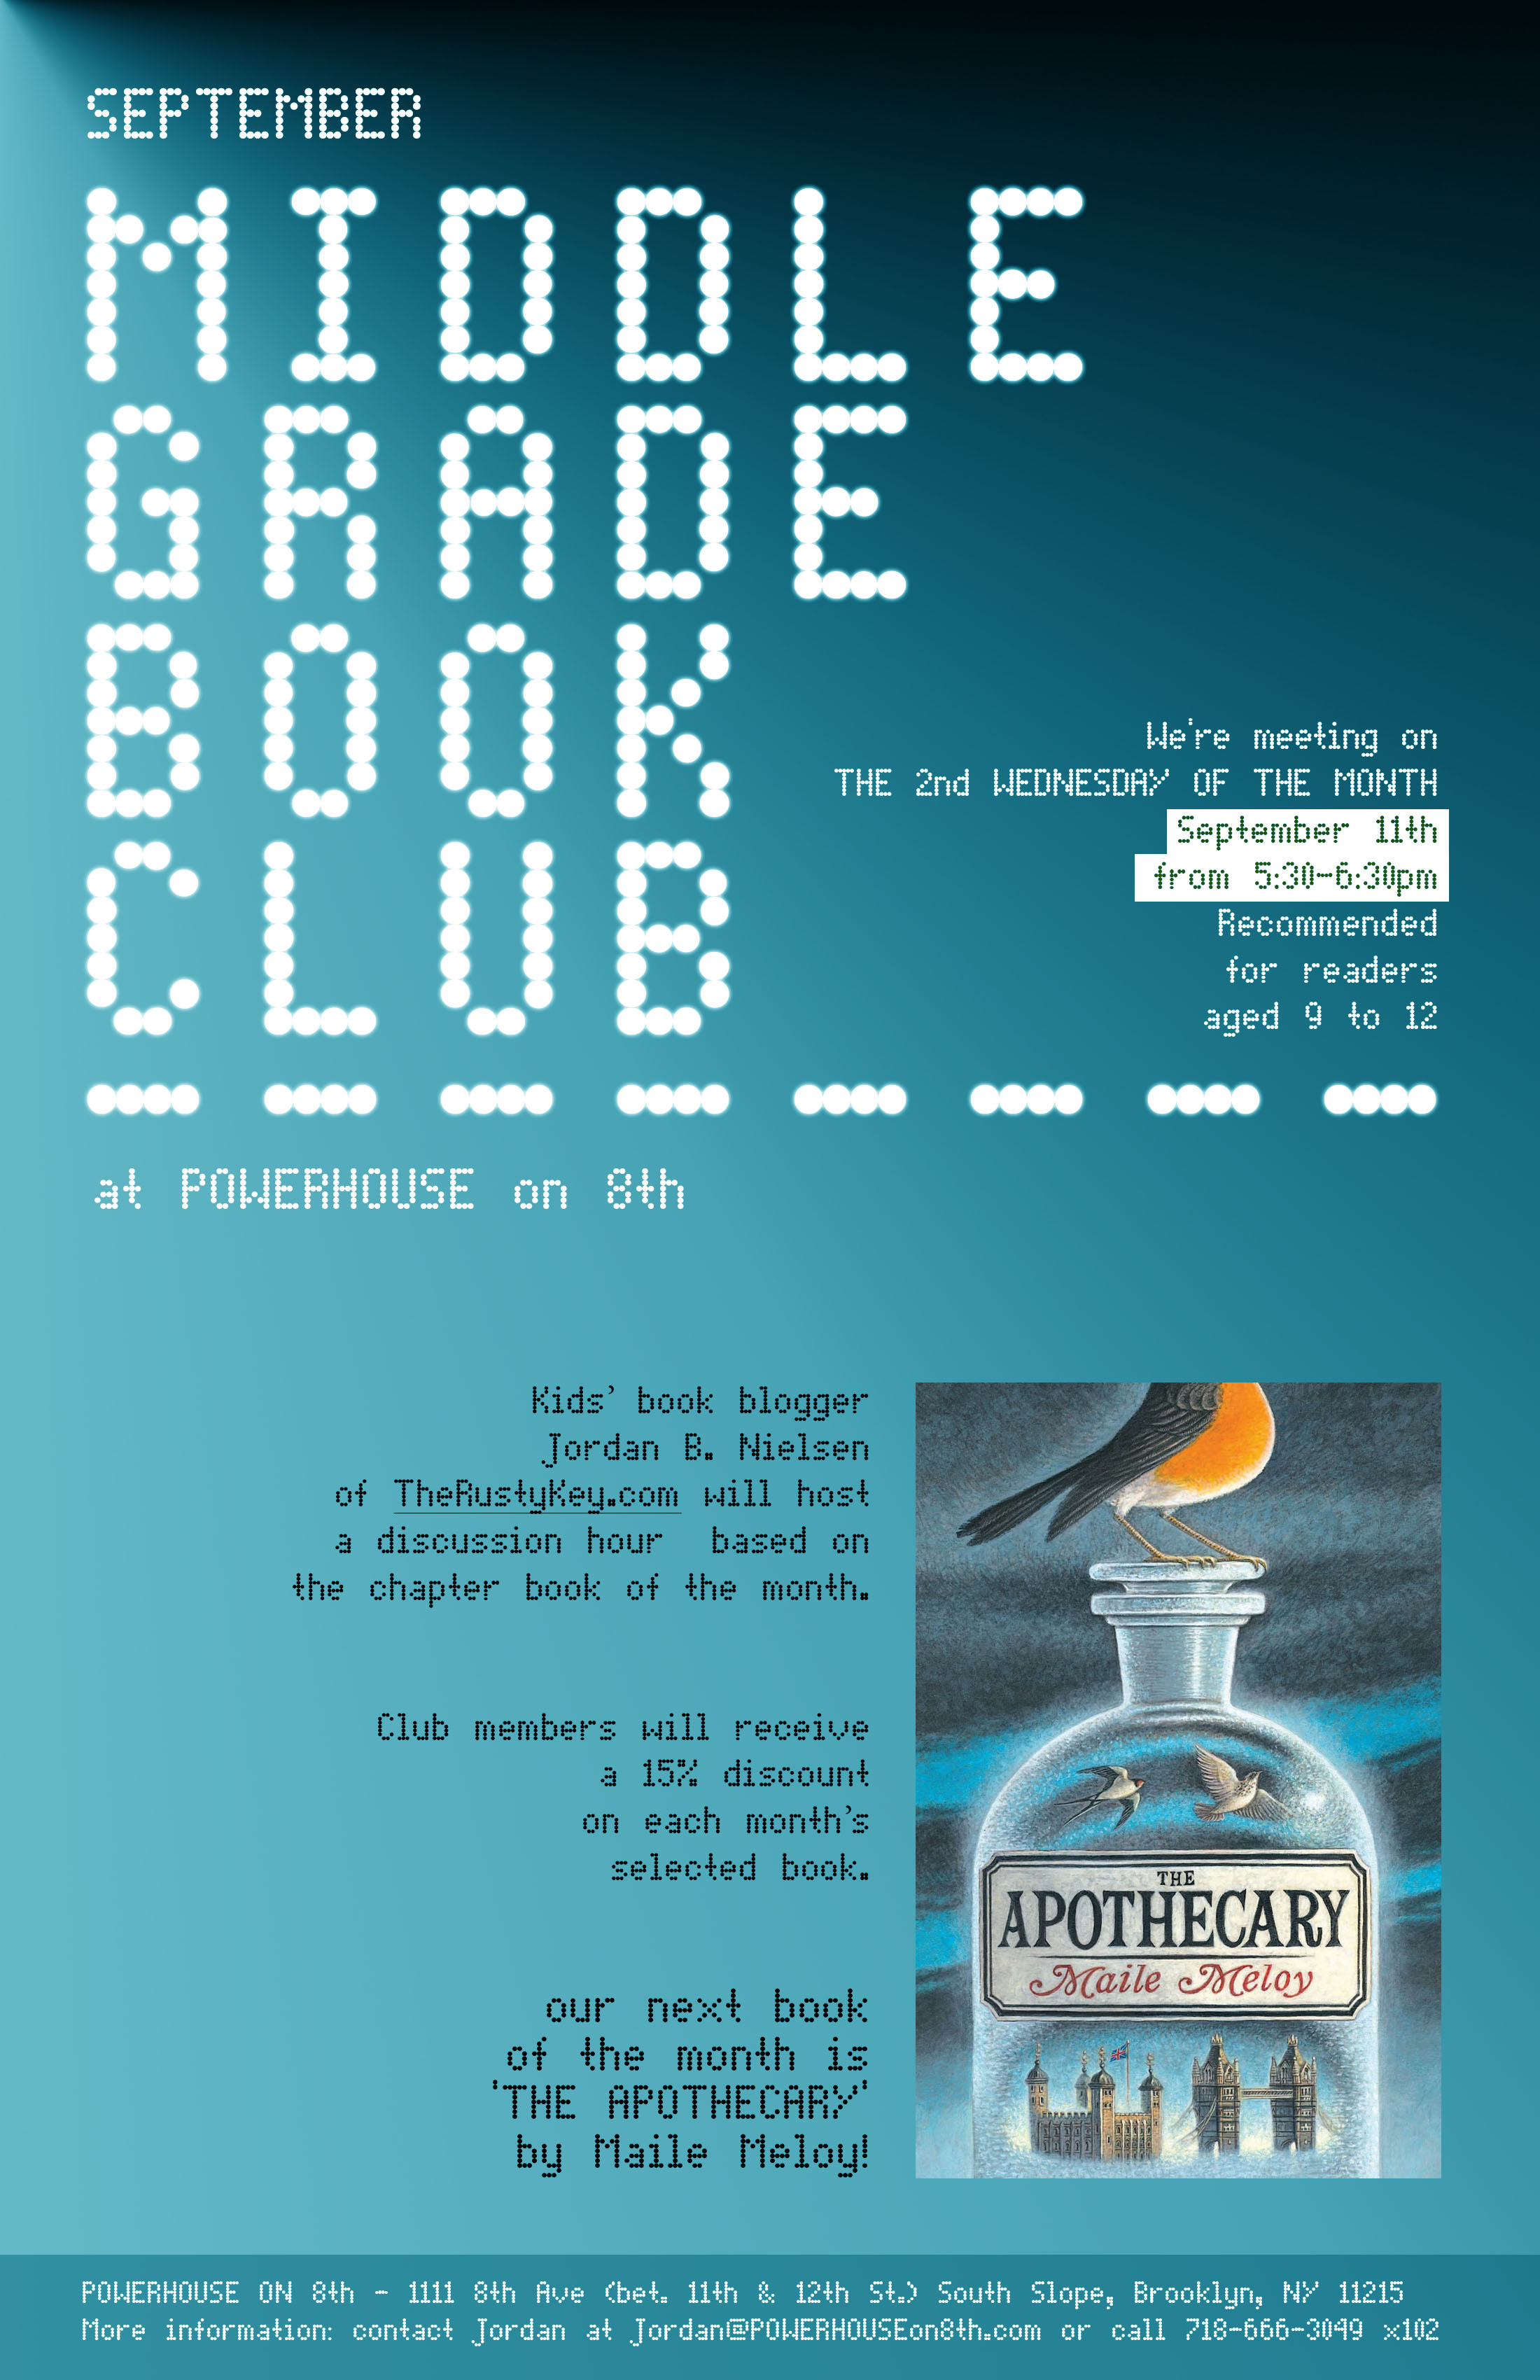 September Middle Grade Book Club: The Apothecary by Maile Maloy